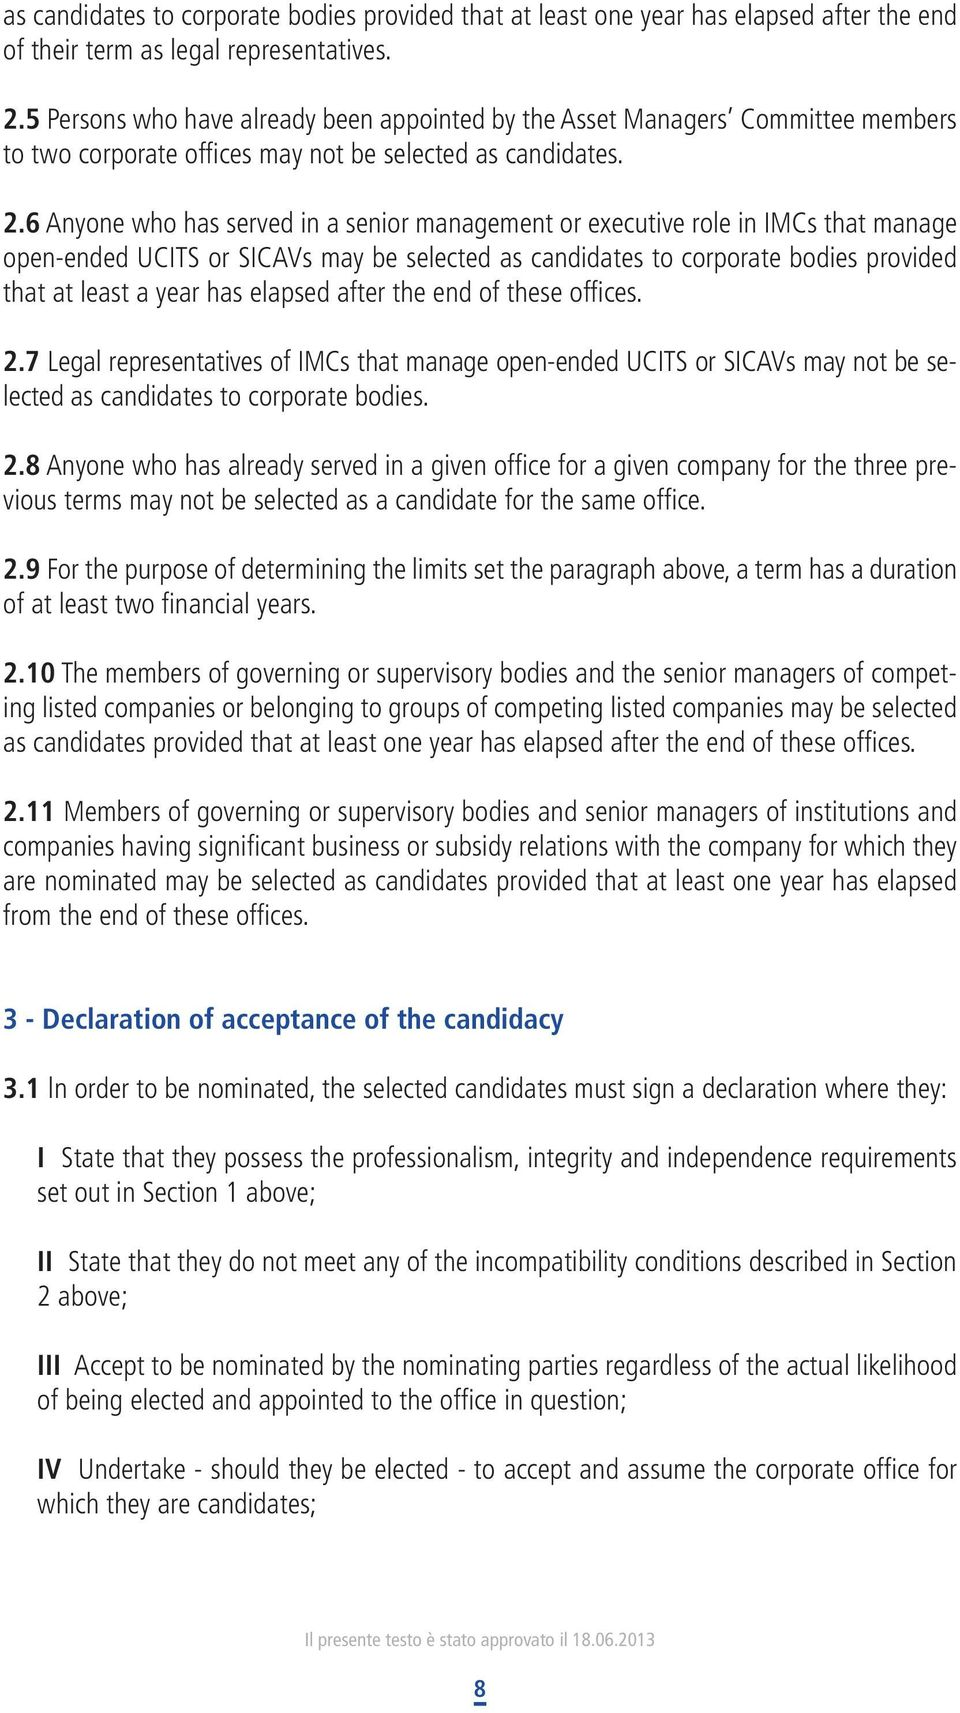 6 Anyone who has served in a senior management or executive role in IMCs that manage open-ended UCITS or SICAVs may be selected as candidates to corporate bodies provided that at least a year has